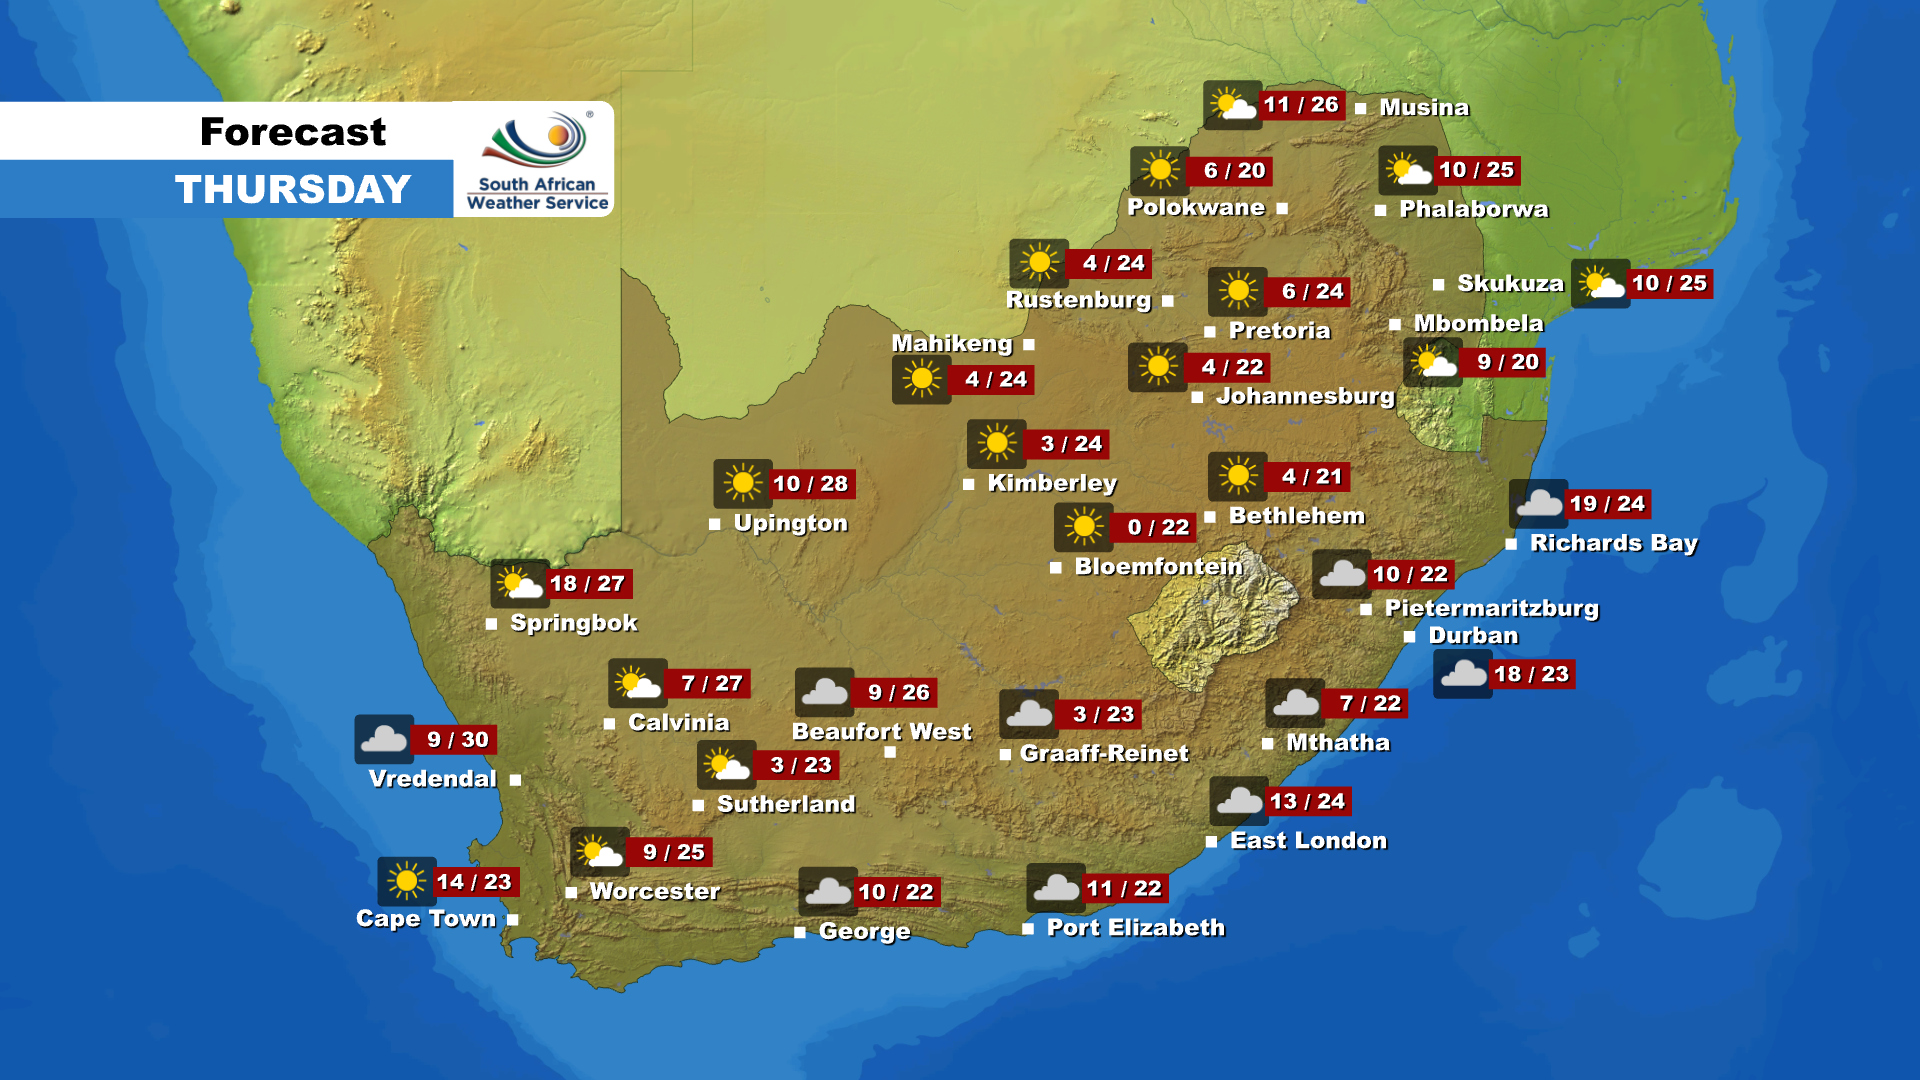 Here is the weather forecast for Thursday, 4 June 2020.